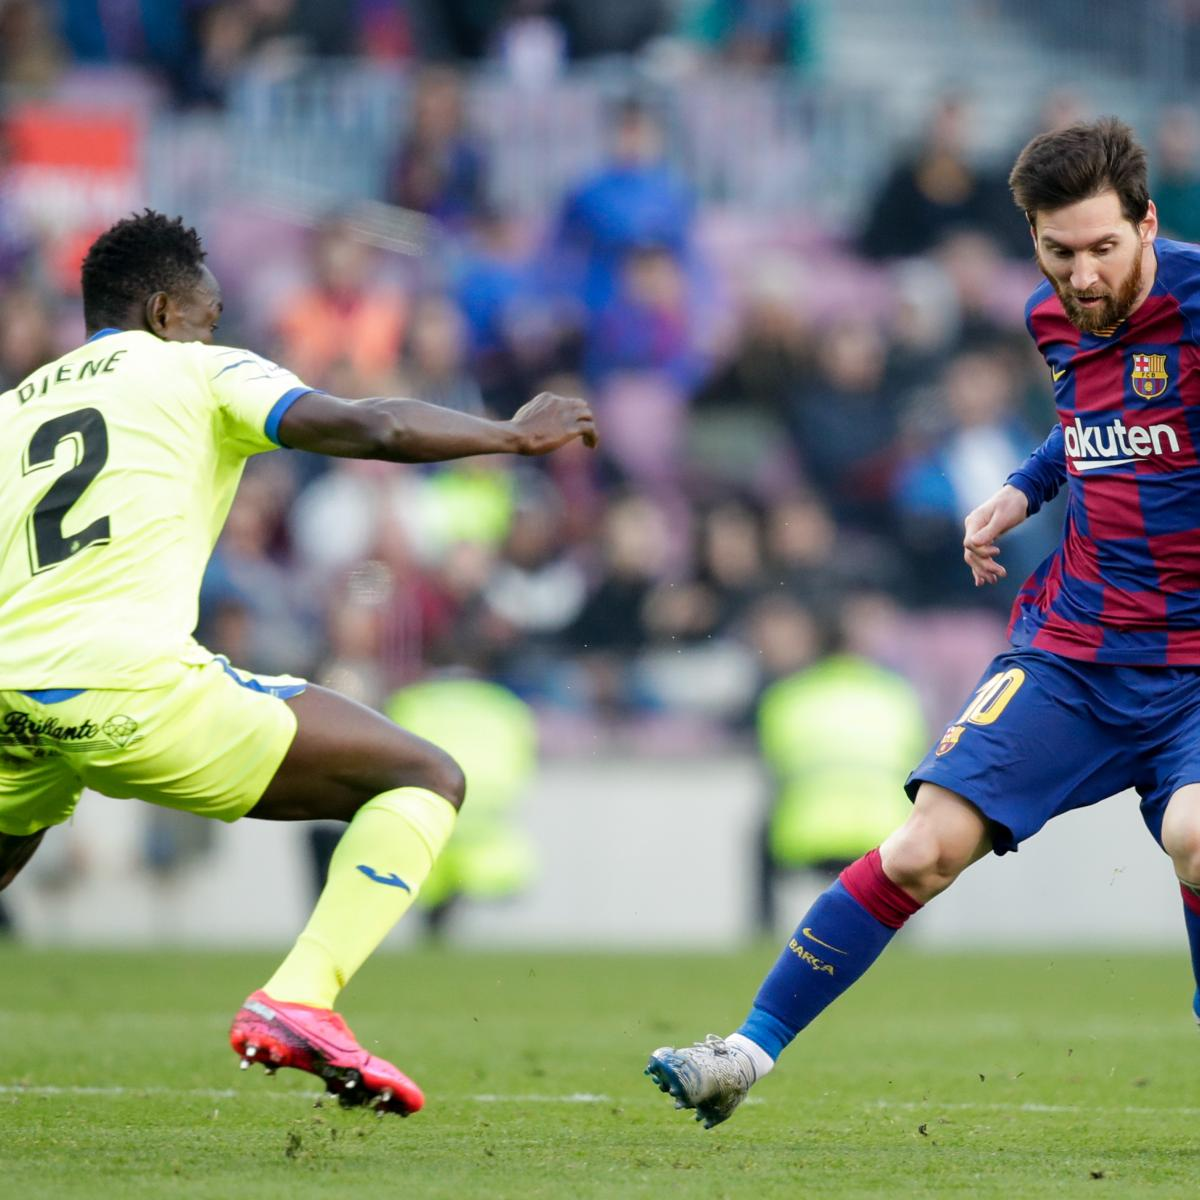 La Liga Results 2020: Scores and Updated Table After Saturday's Week 24 Matches